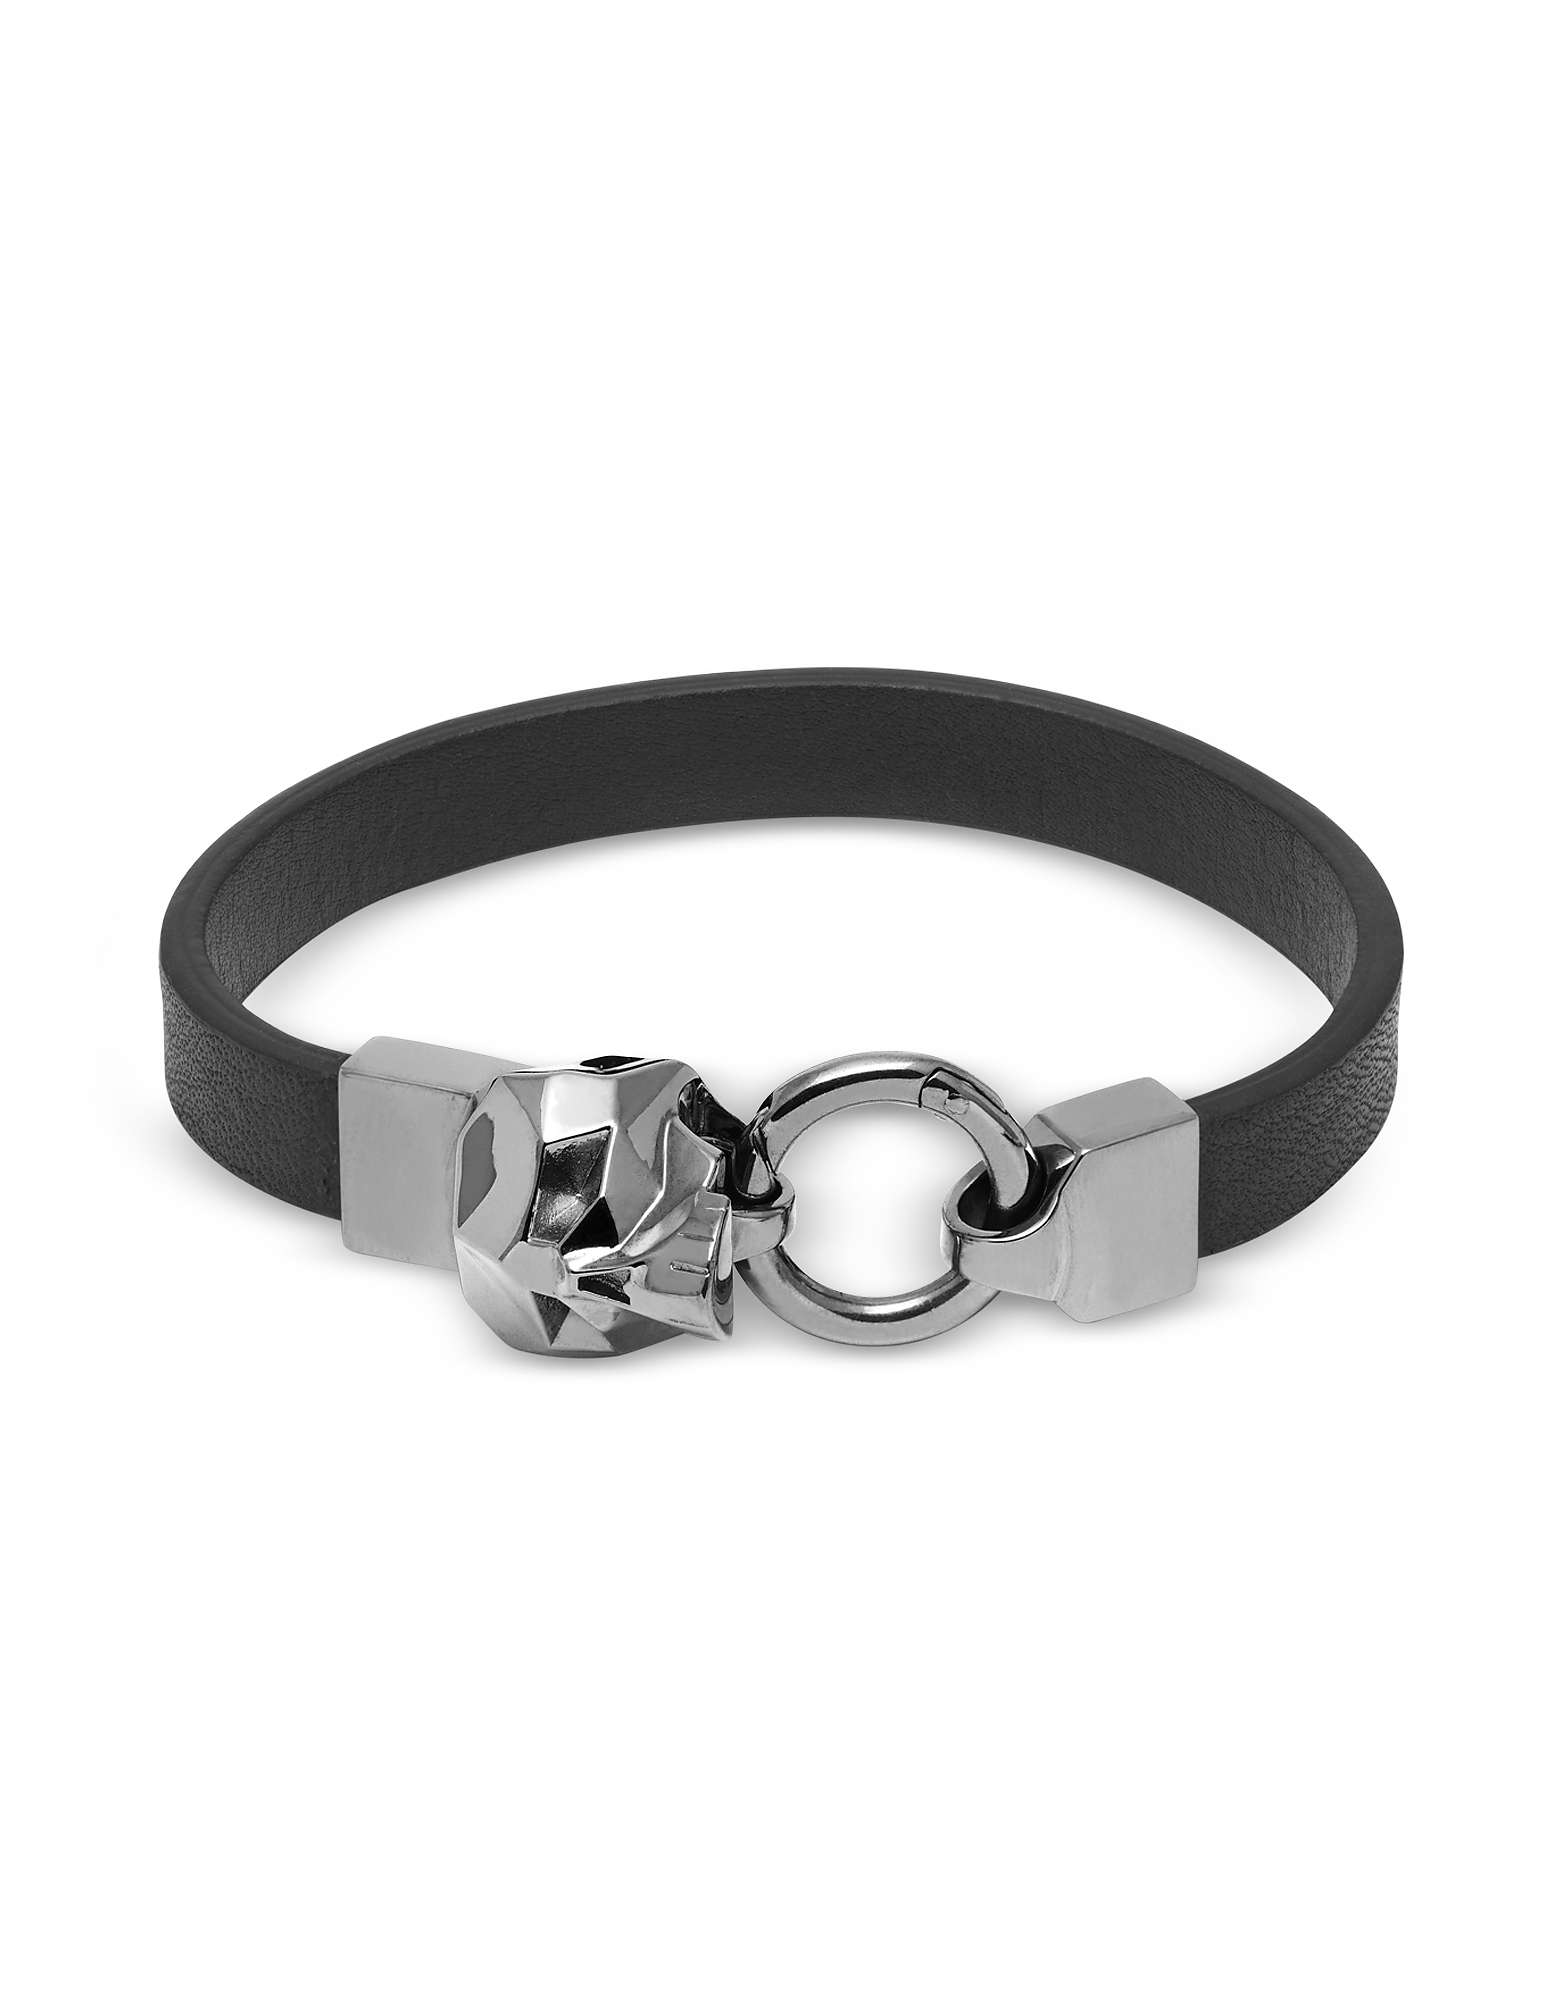 Hexagus Skull Leather Bracelet Gunmetal